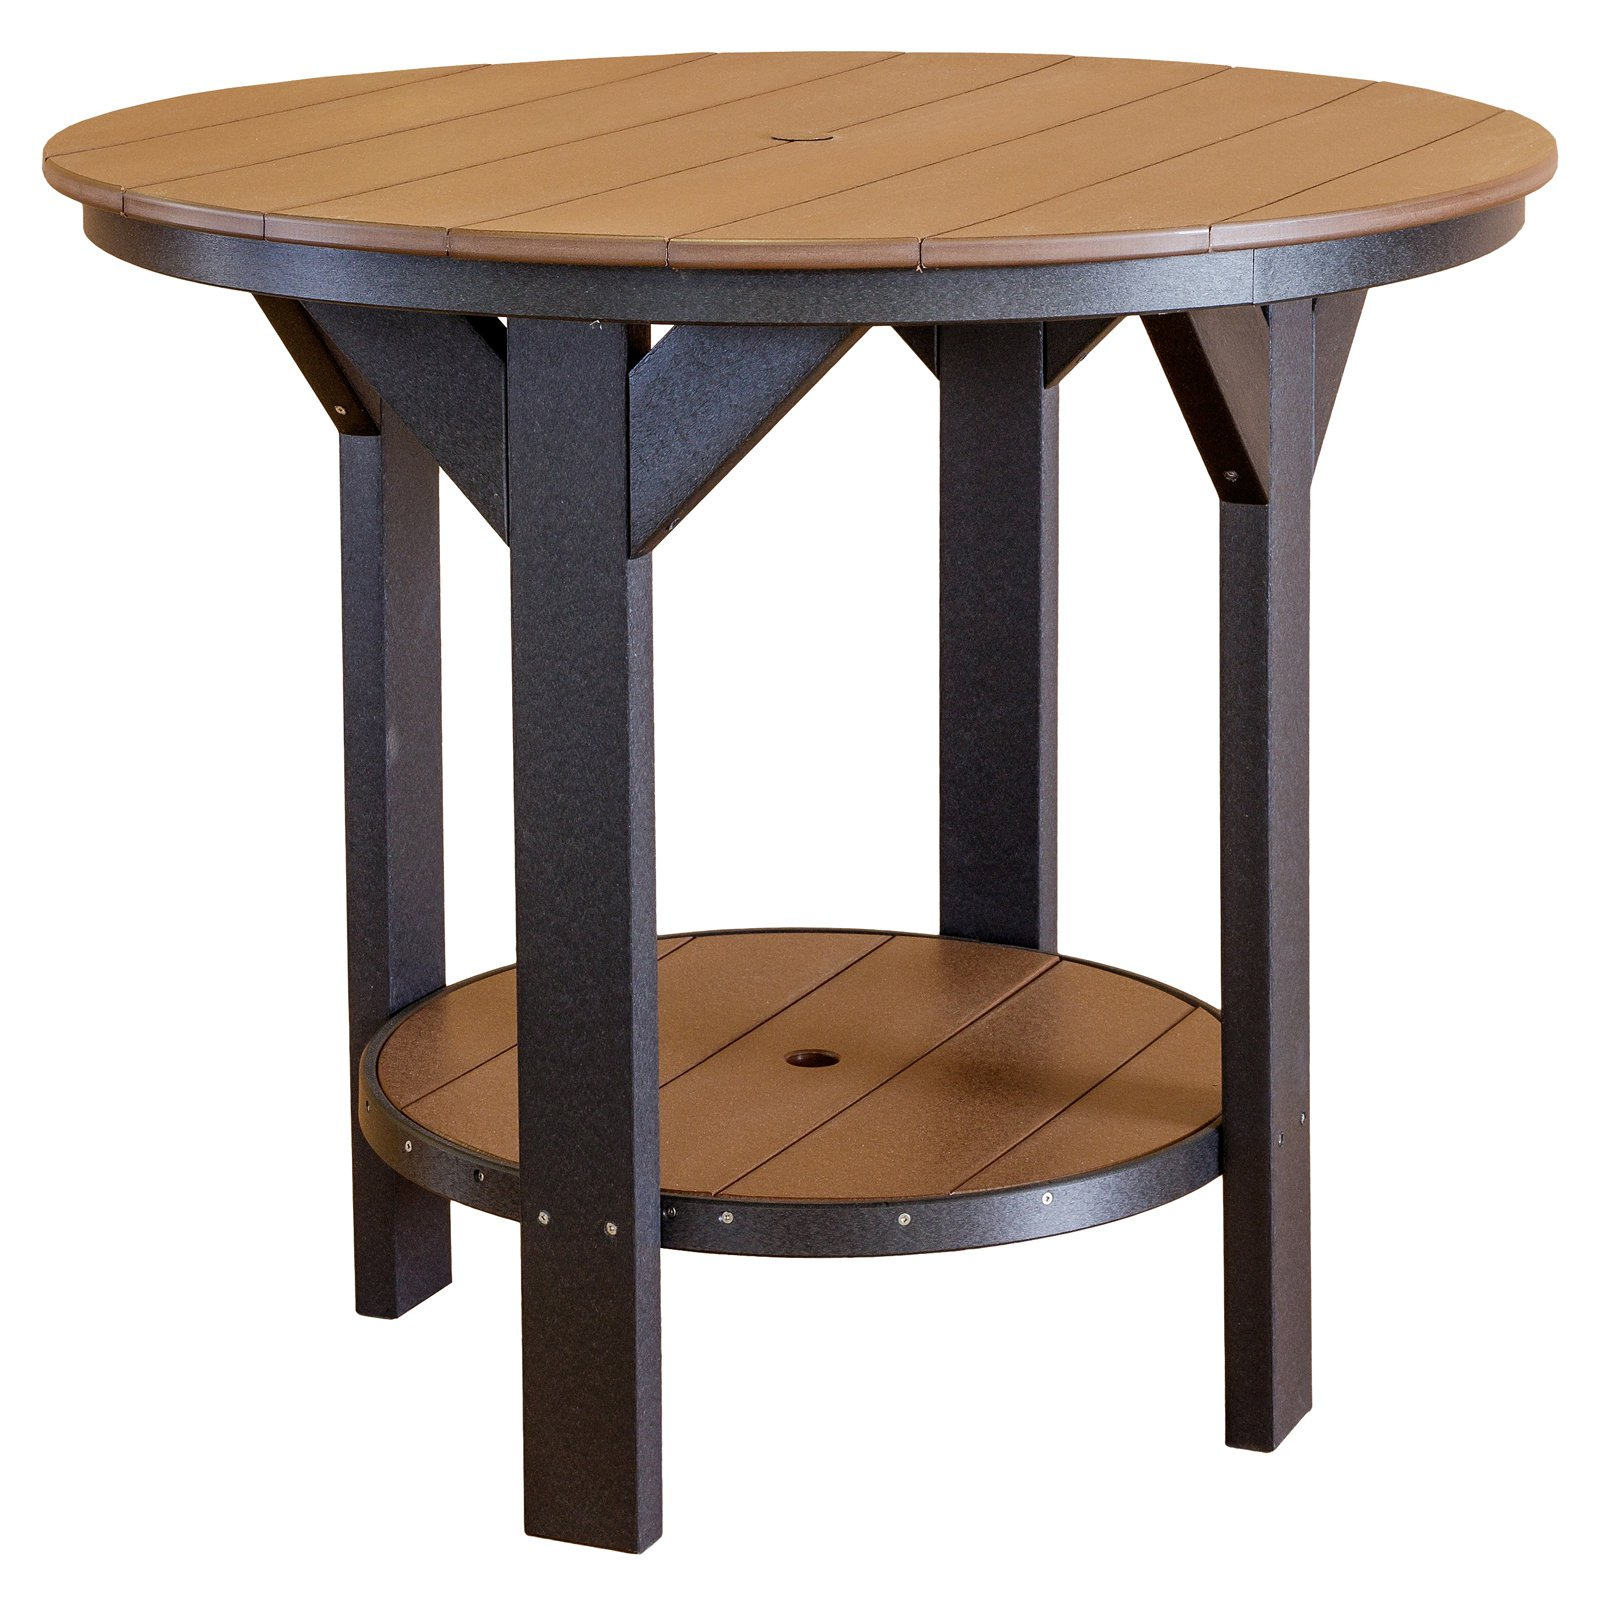 Little Cottage Heritage Recycled Plastic 42 in. Round Patio Pub Table